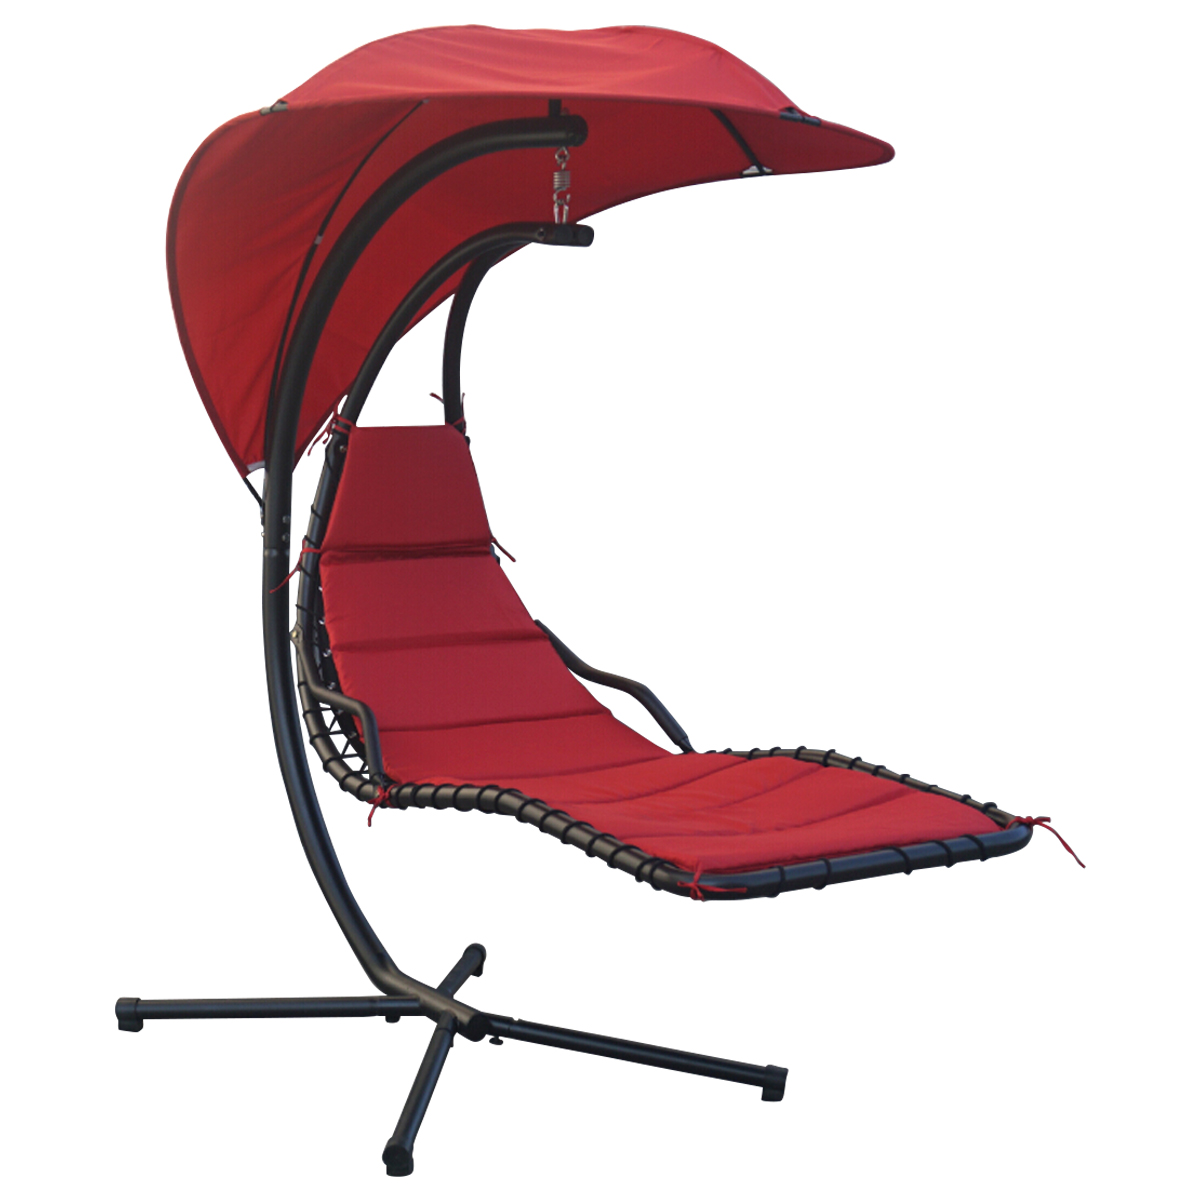 helicopter swing seat with 371686273248 on Hammock Covers Outdoor Furniture in addition Swing Chair Cushion Elegant Replacement Cushions Canopy For Swing Garden Hammock Garden Treasures 3 Seat Steel Casual Porch Swing Replacement Helicopter Swing Chair Replacement Cushion in addition Dream Chair Dream Chair Dream Meaning Furniture Rearranged besides Wooden Garden Swing Seat together with Luxuria Apache Helicopter Chair Black.